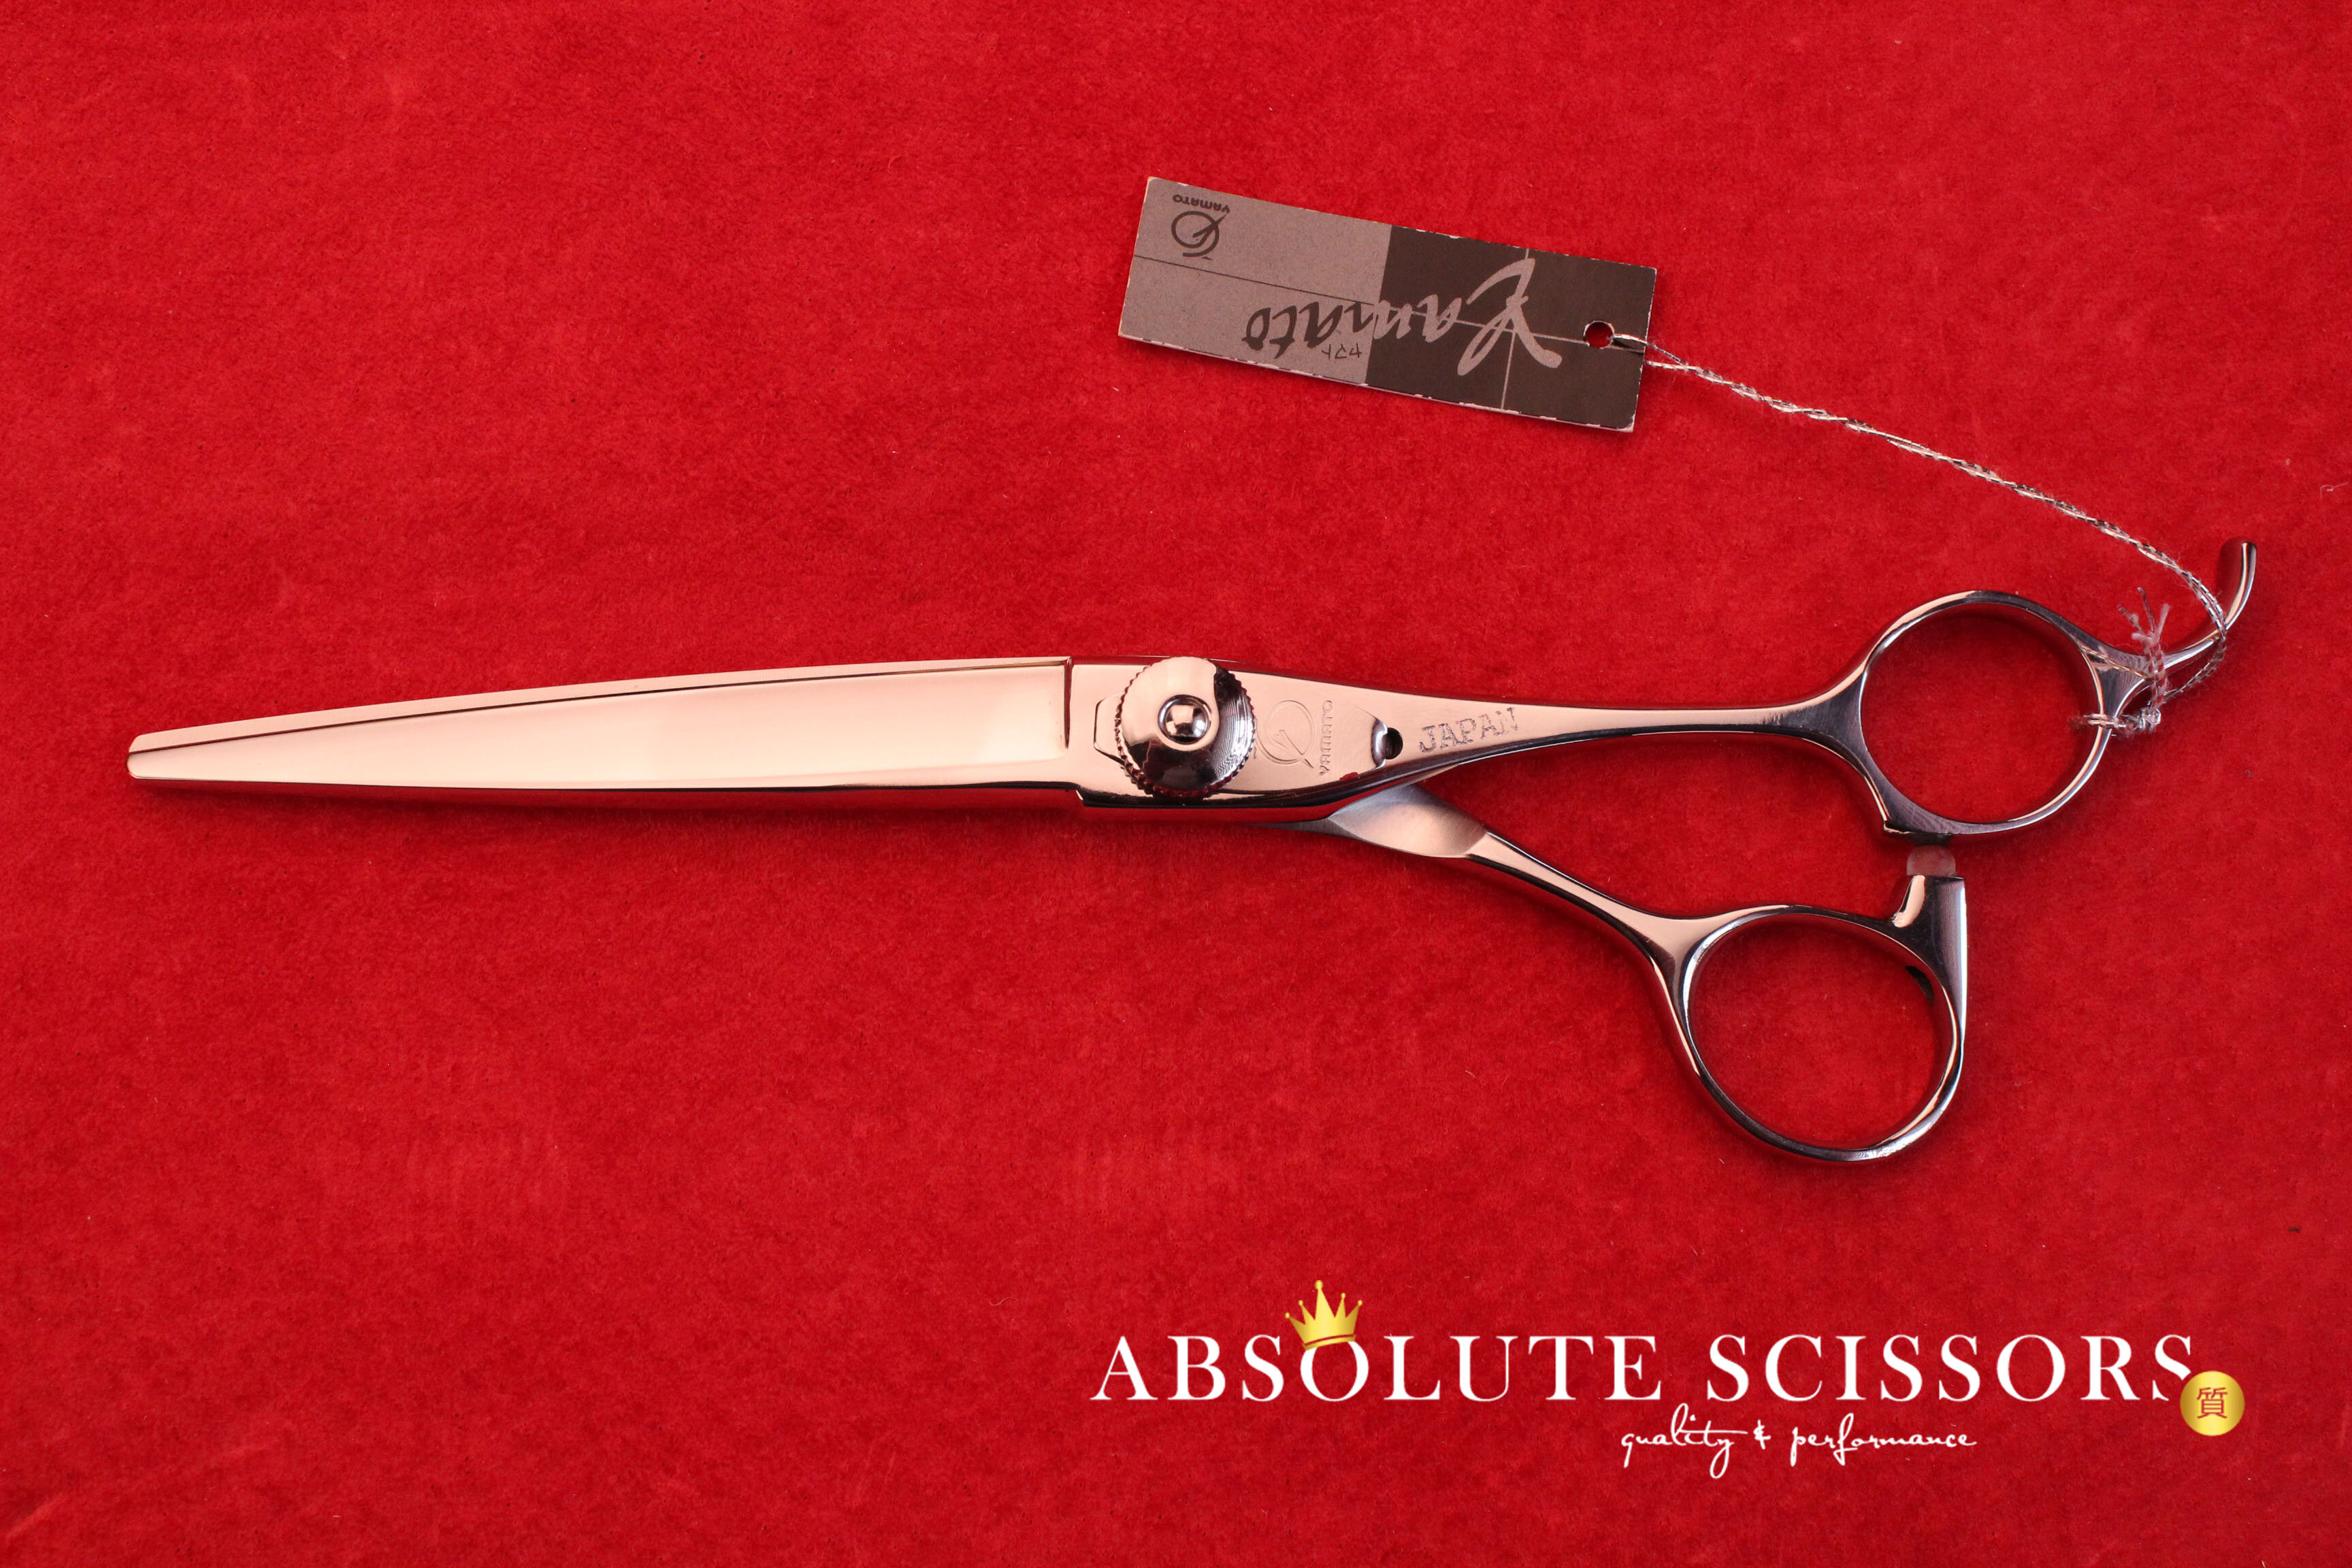 Wing N65 3713 Yamato hair scissors size 6.5 inches